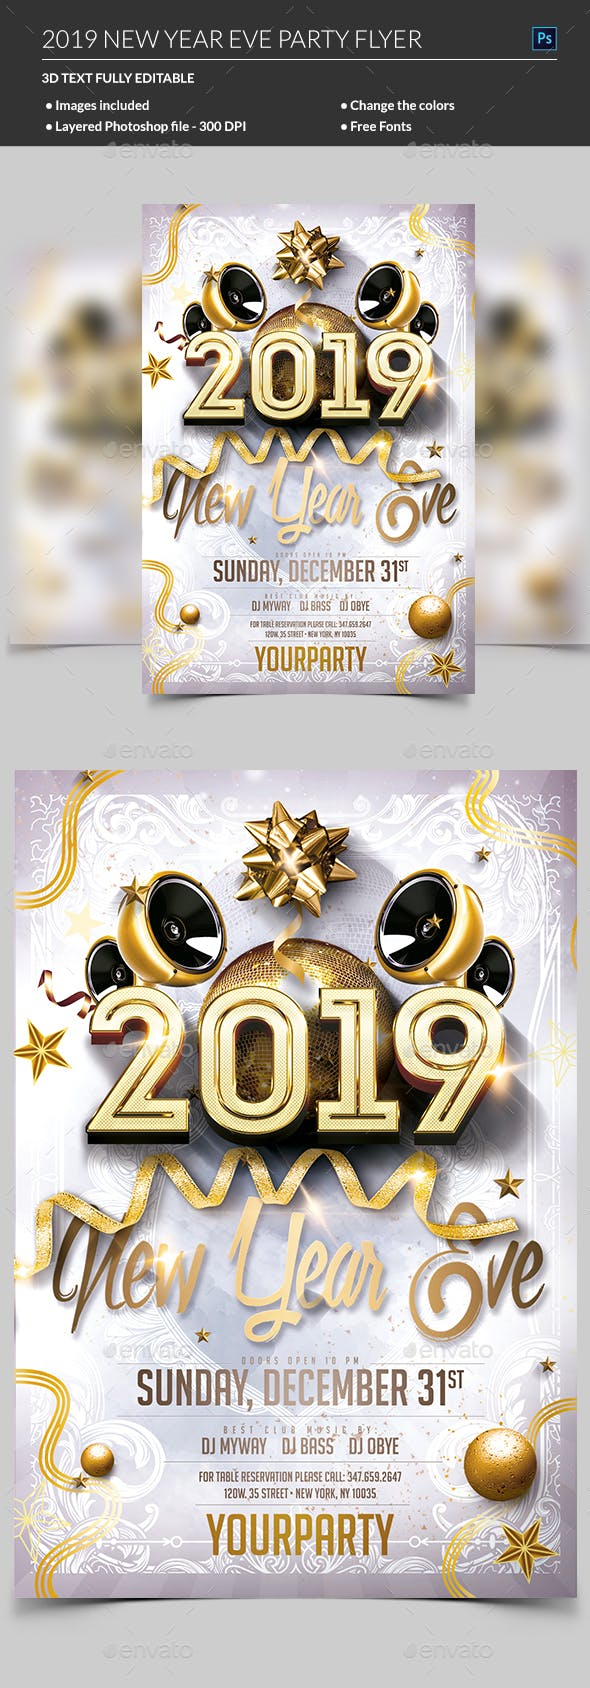 new year eve party flyer by madridnyc graphicriver